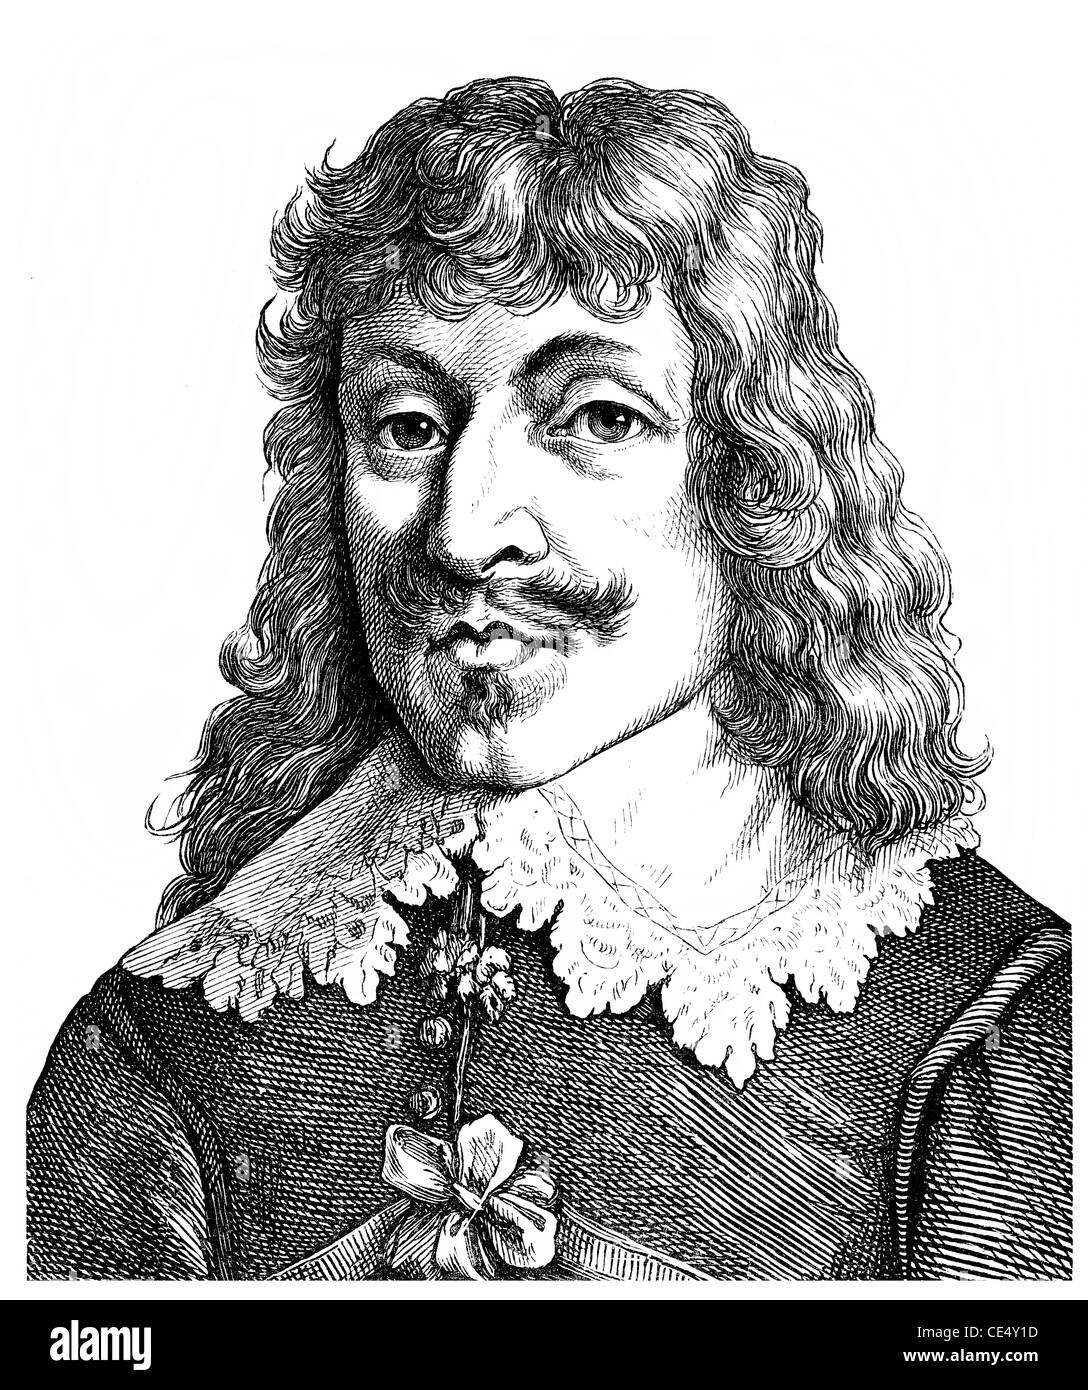 Paul Fleming, 1609 - 1640, a German physician and writer, poet of the German Baroque - Stock Image